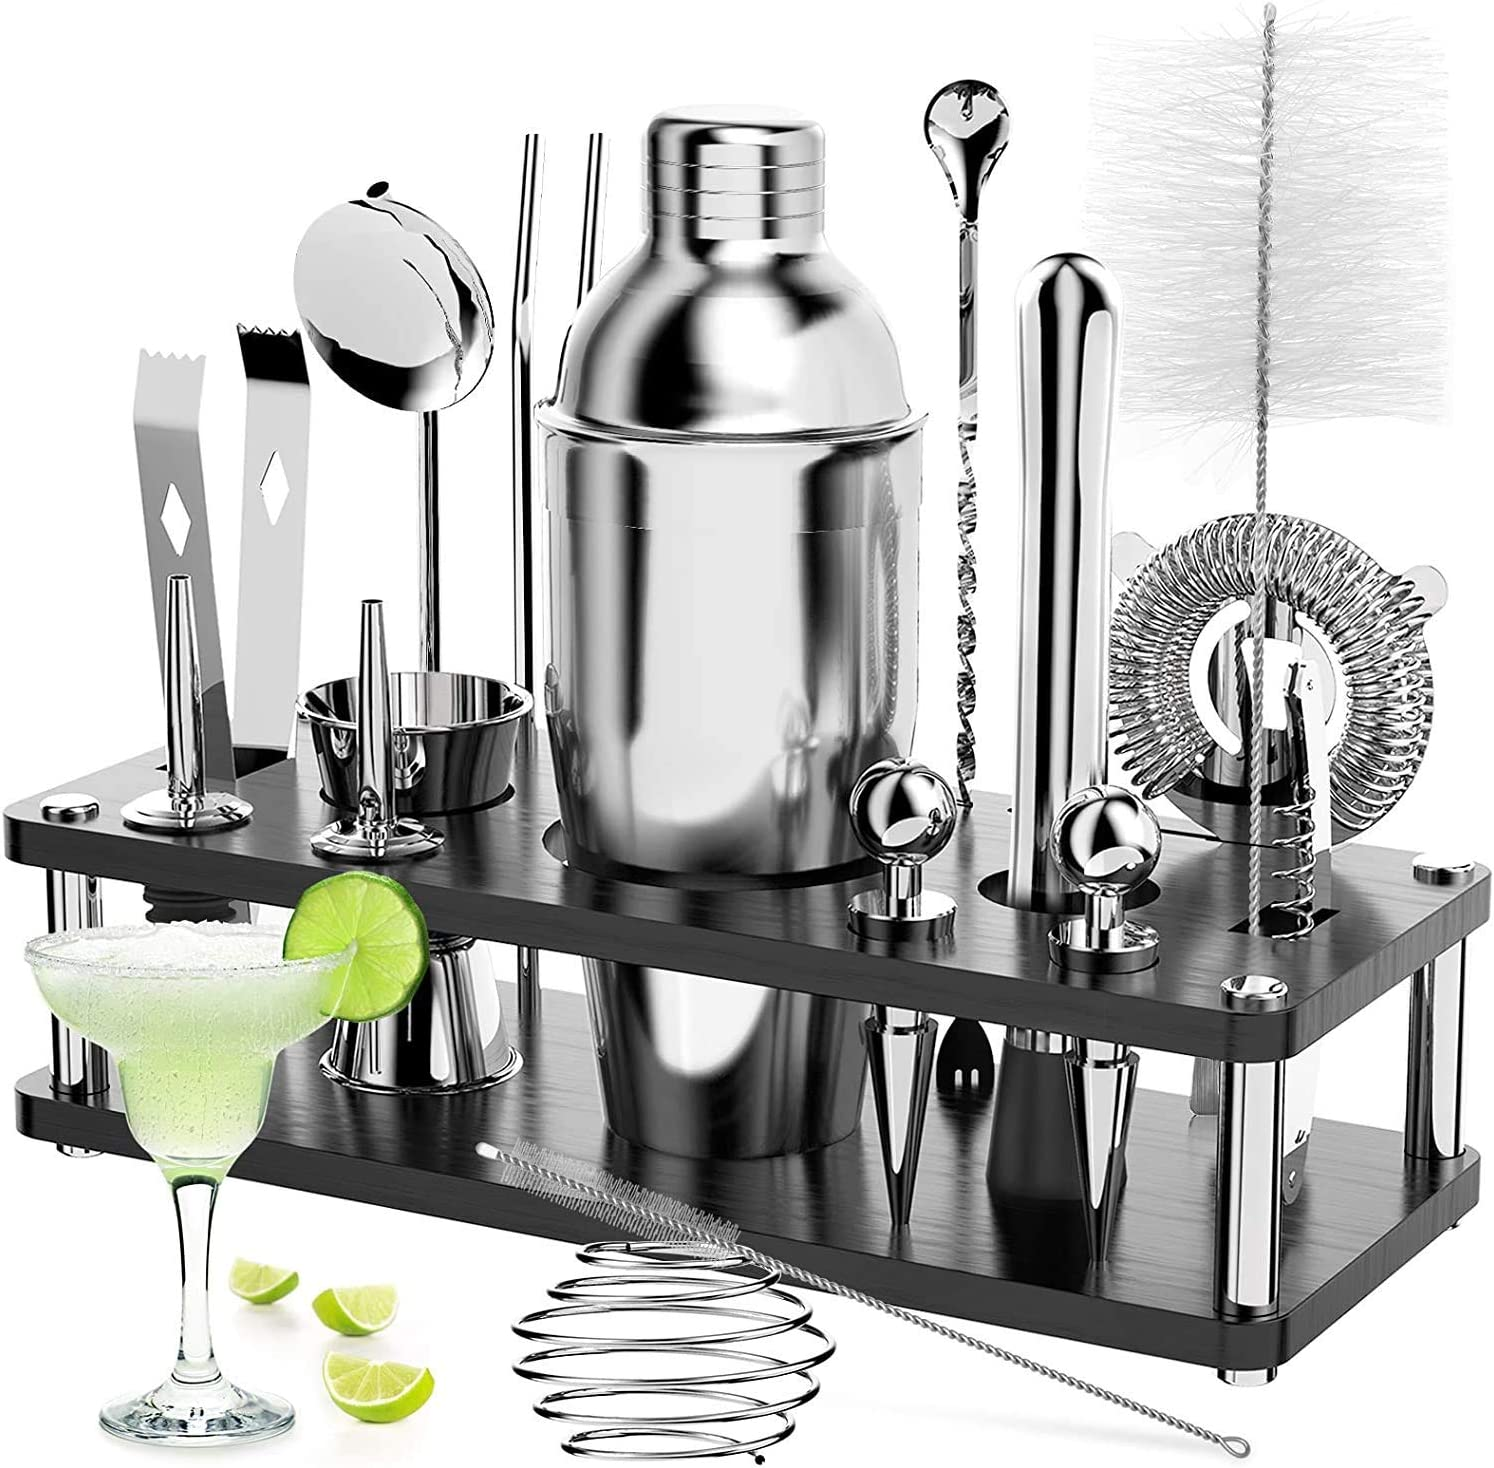 18 Pcs Bartender Kit Cocktail Shaker Set with Stand, RATEL Stainless Steel Professional Bar Tool, Cocktail Martini Shaker Kit Including Shaker, Muddler, Jigger, Strainer, Recipes Booklet